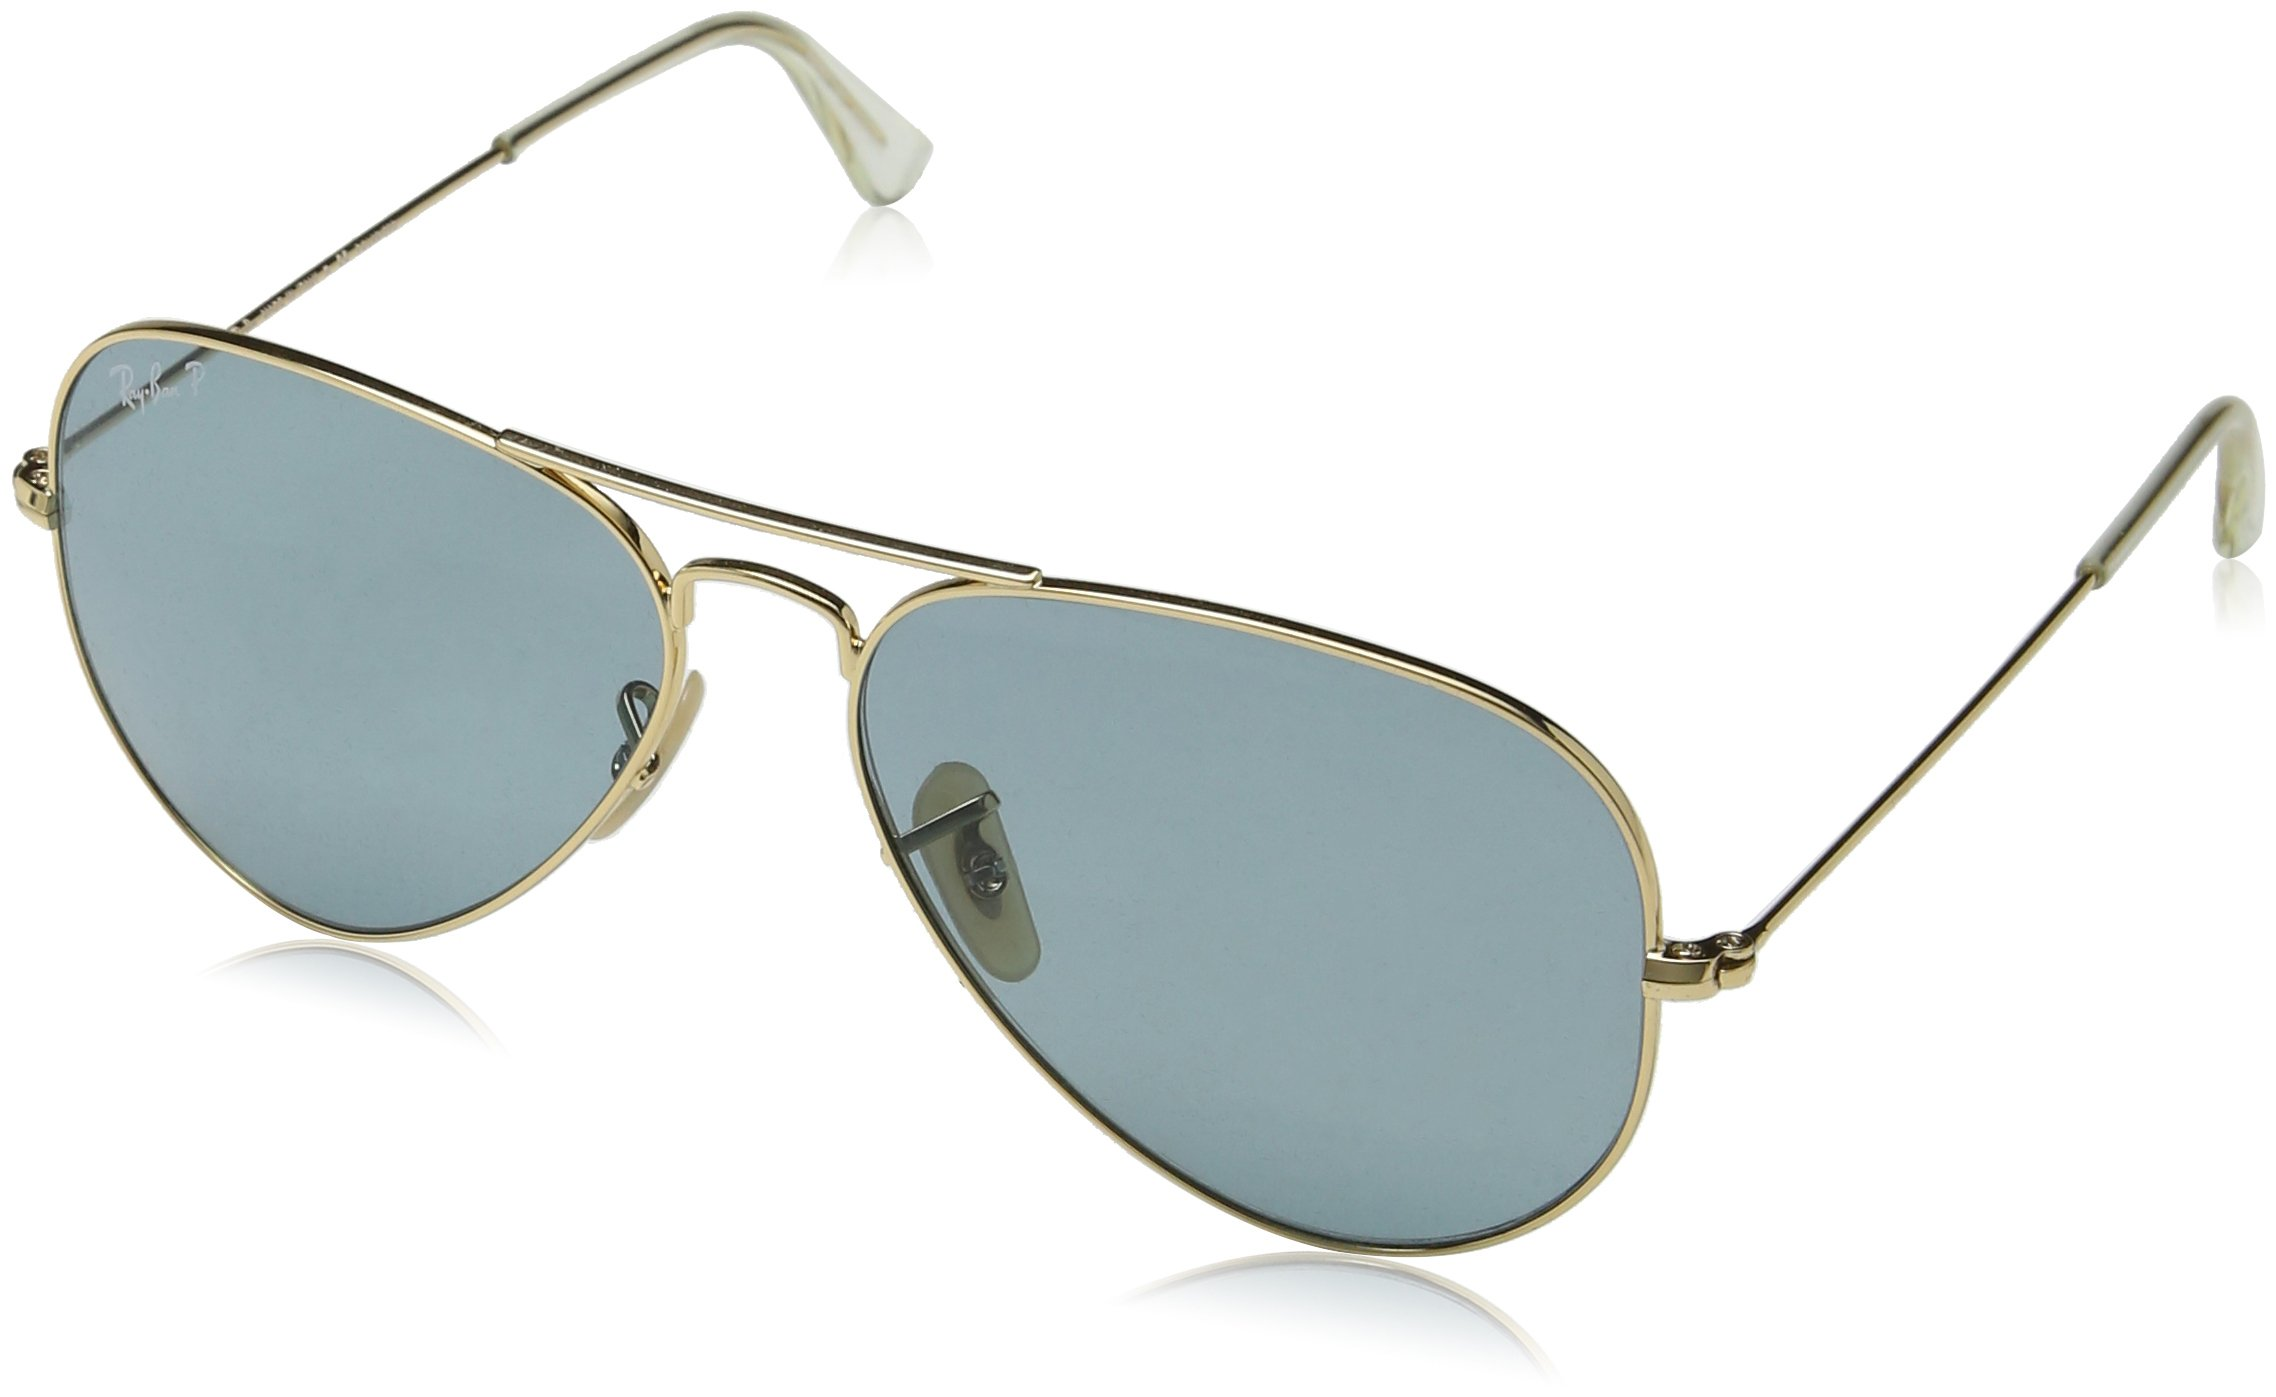 Ray-Ban 3025 Aviator Large Metal Non-Mirrored Polarized Sunglasses, Gold/Green, 55mm by Ray-Ban (Image #2)